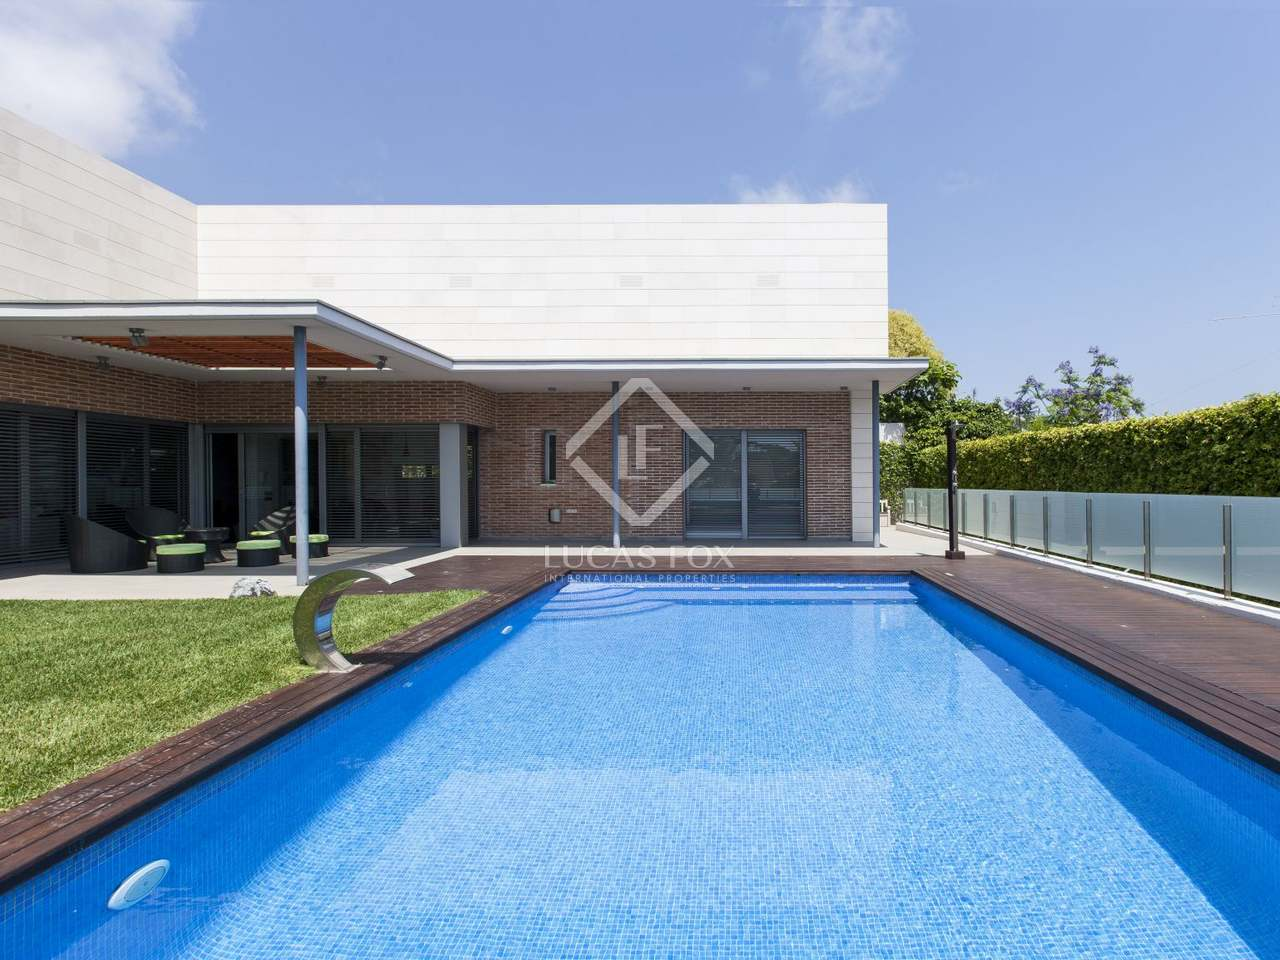 Villa with garden and pool for sale in castelldefels for Garden pool for sale